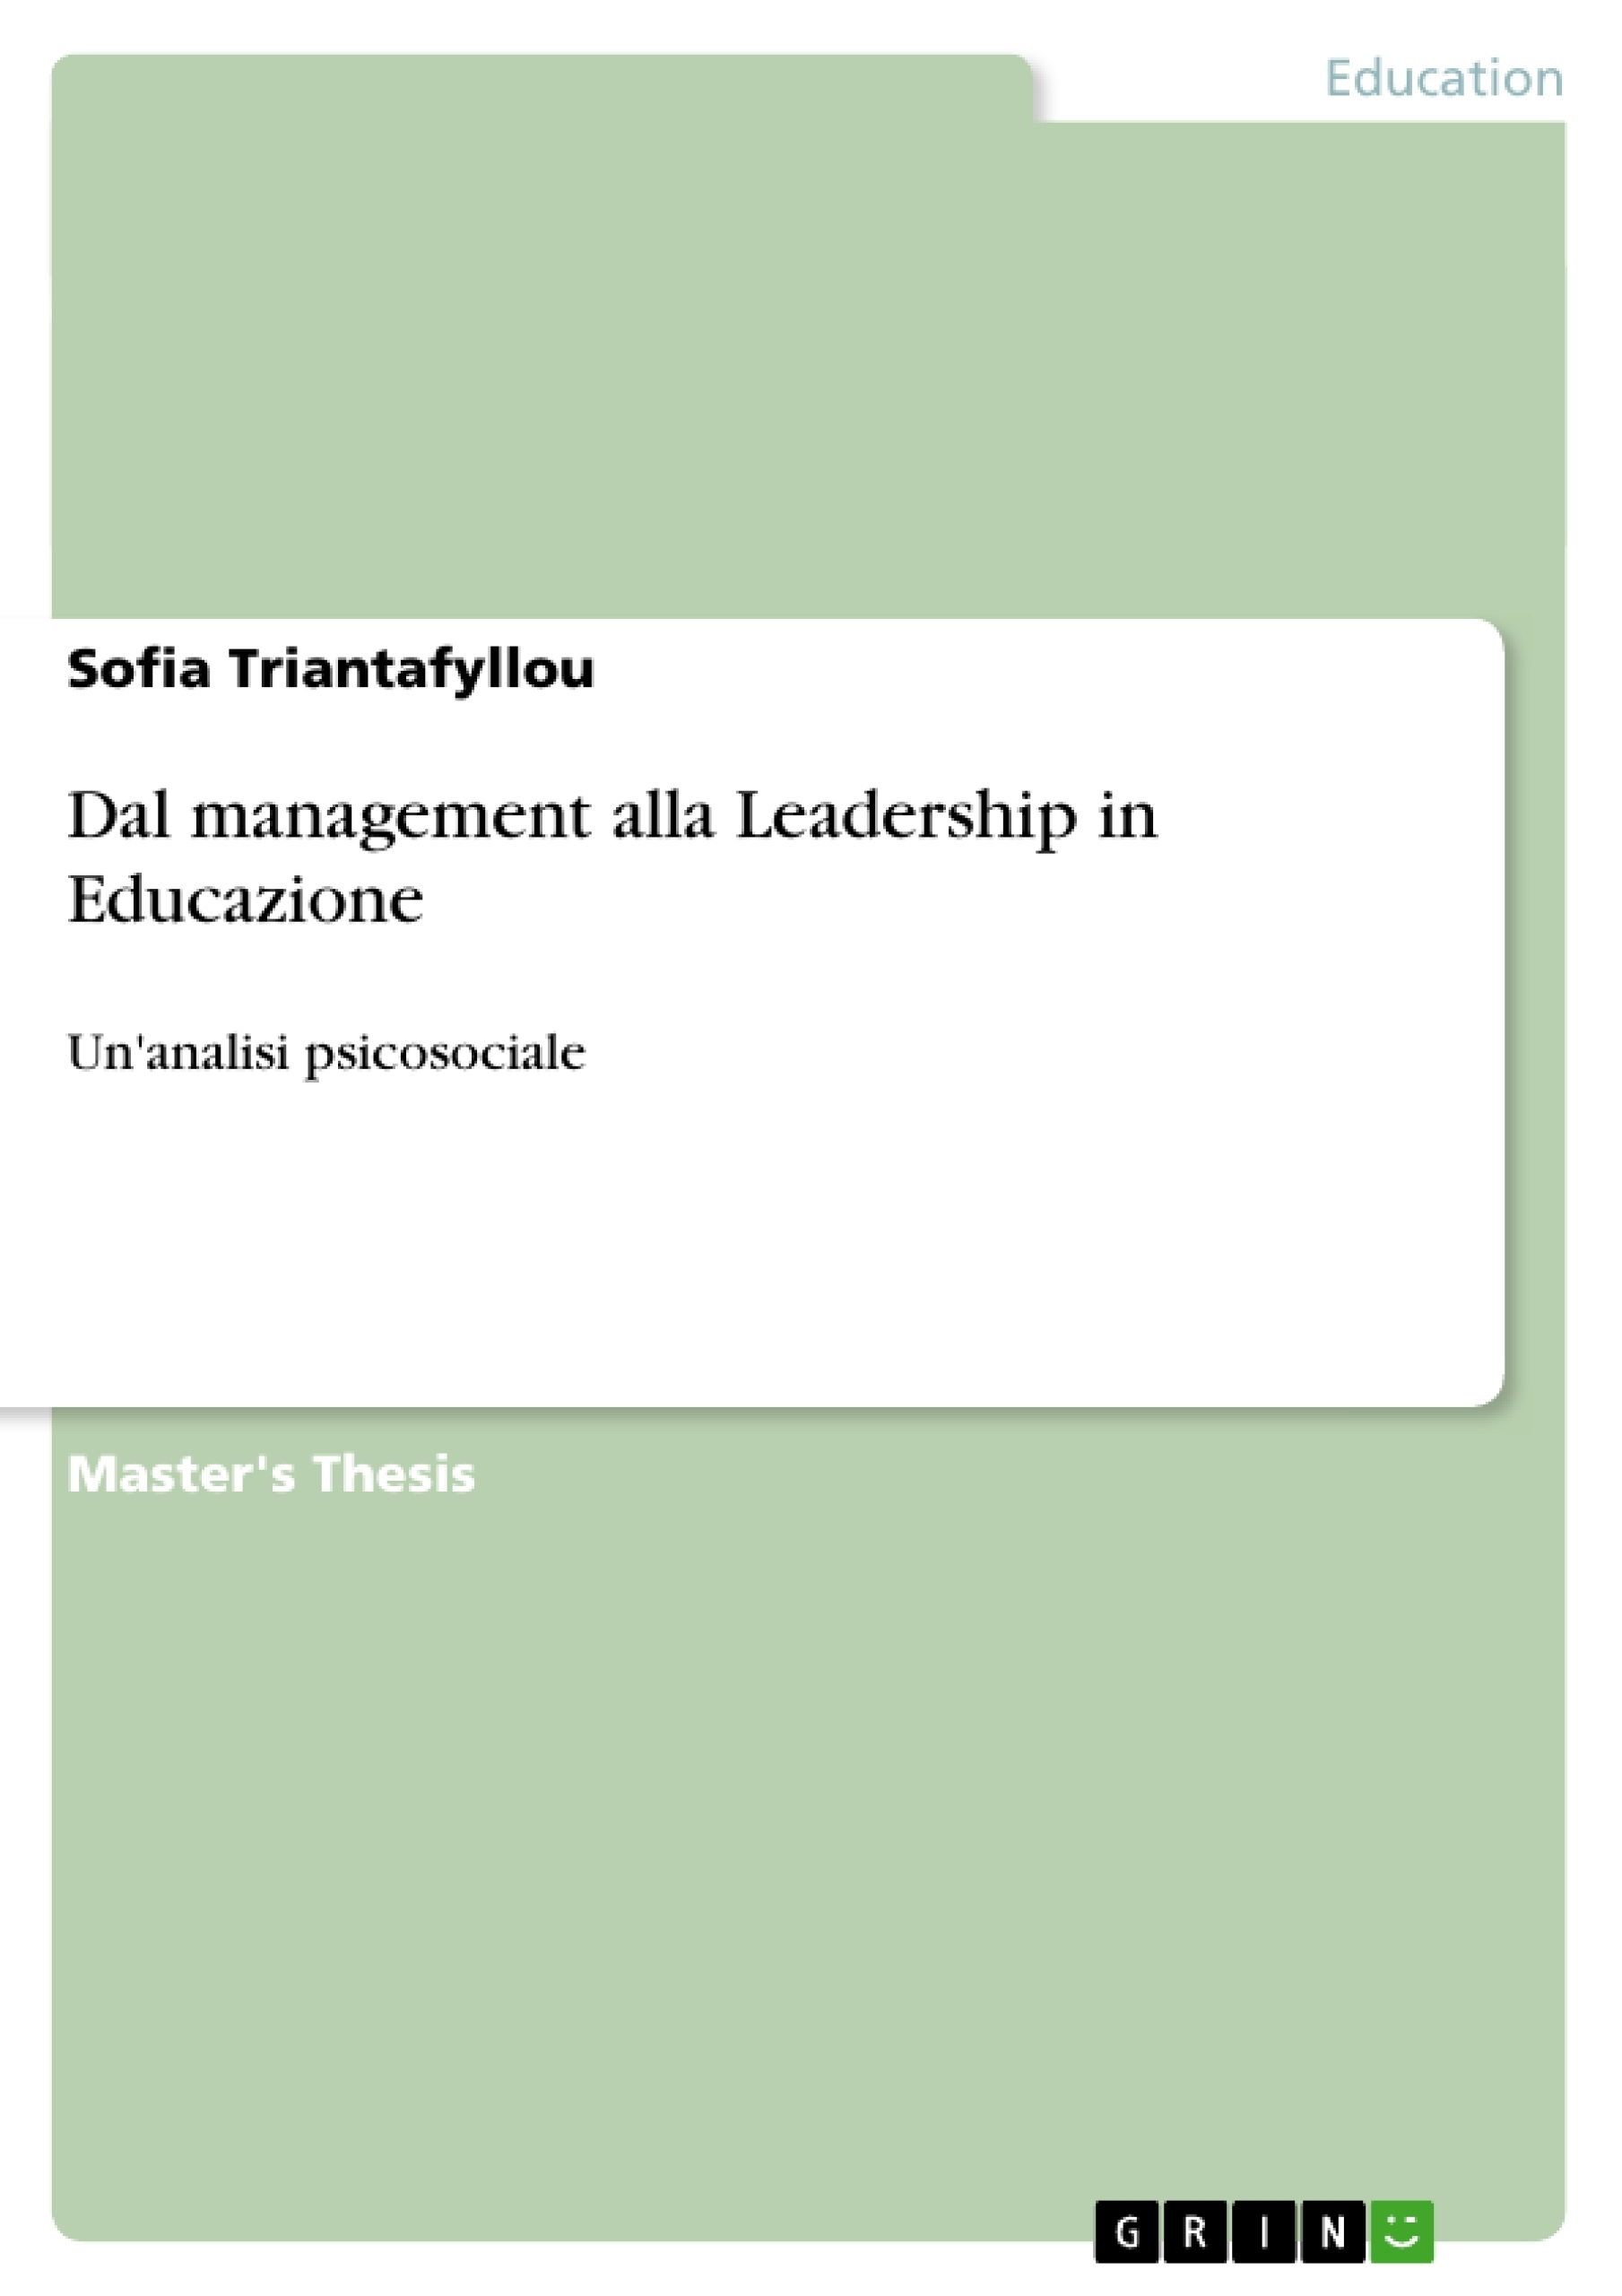 Title: Dal management alla Leadership in Educazione